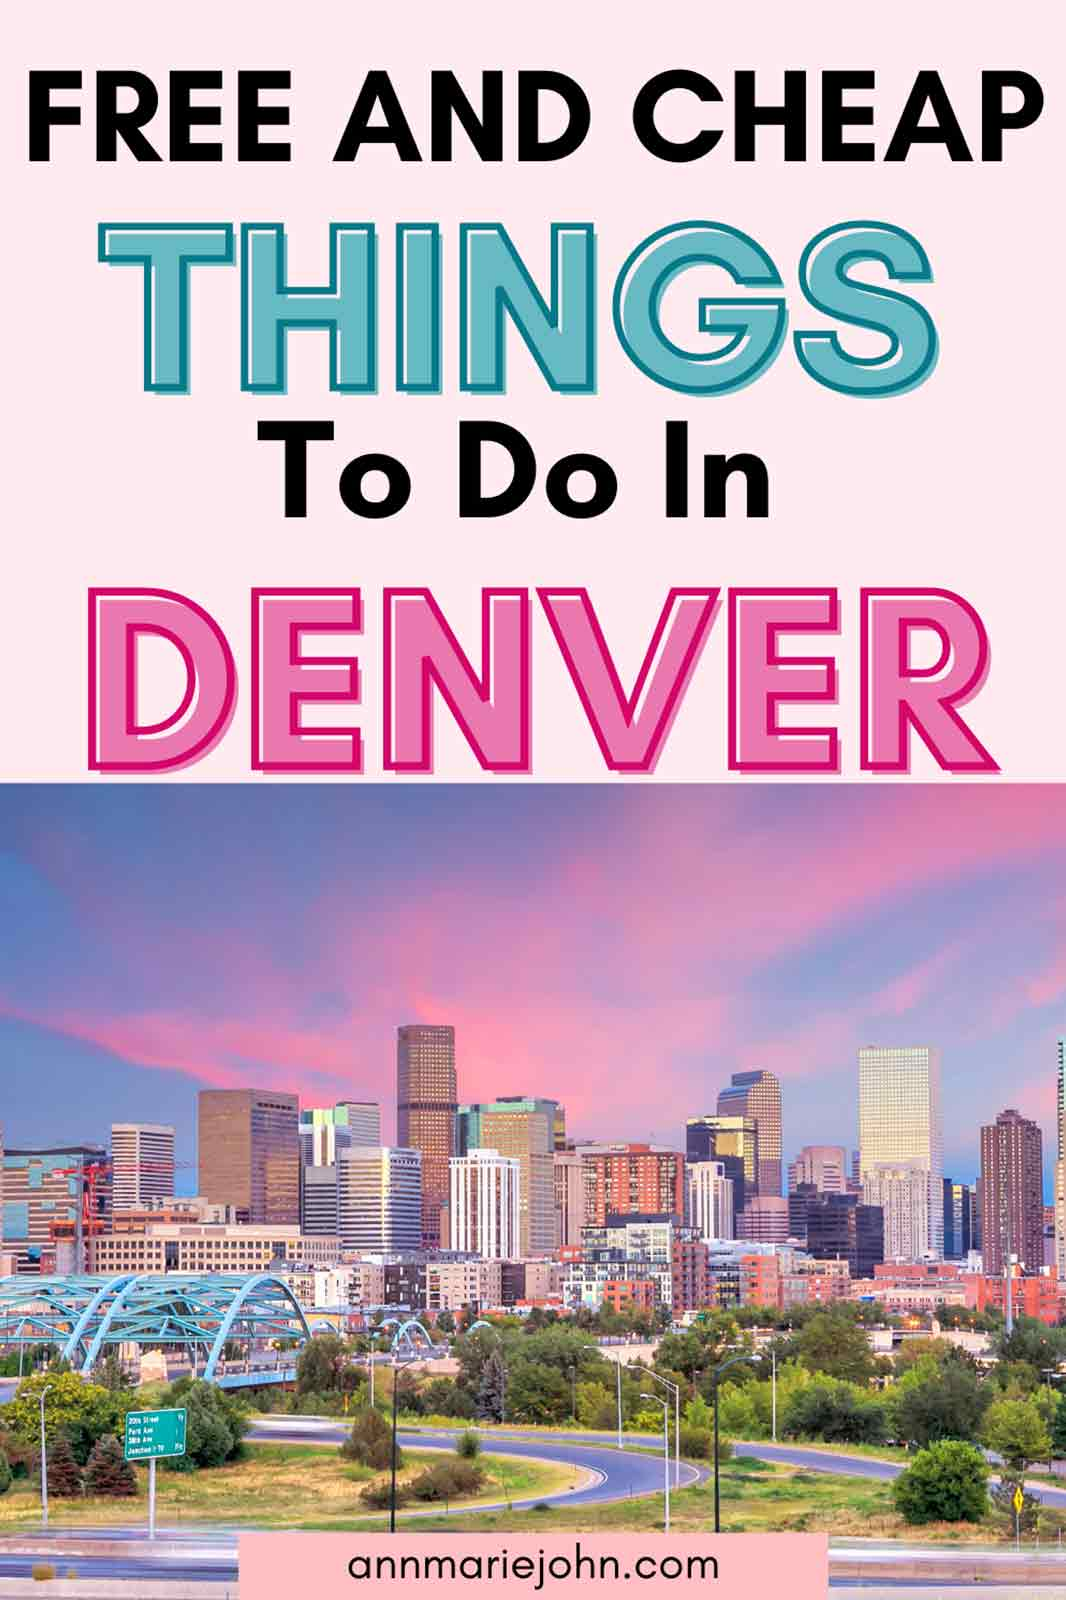 Best Cheap or Free Things to Do in Denver